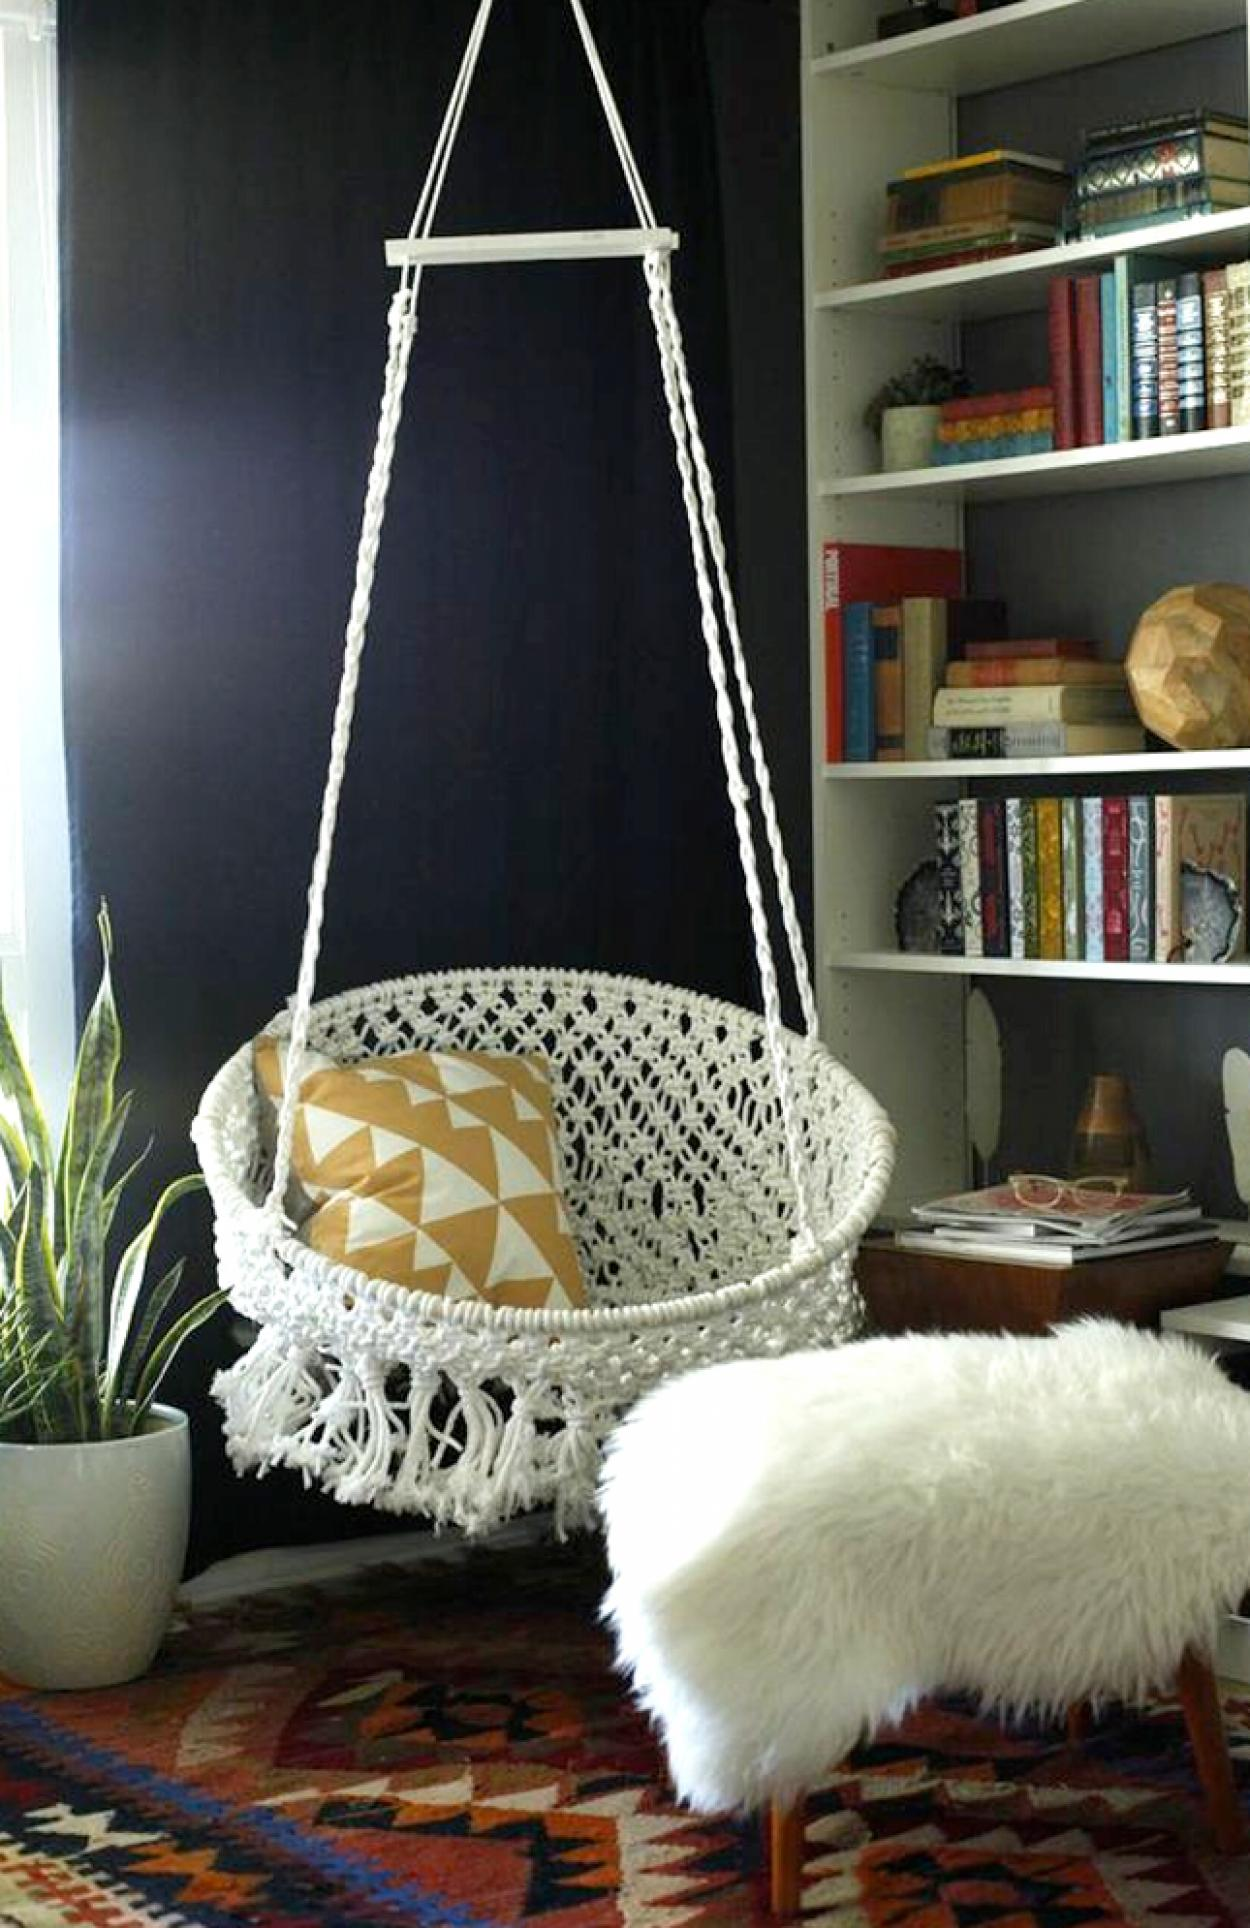 white-round-basket-diy-ceiling-hanging-chair-for-corner-decor